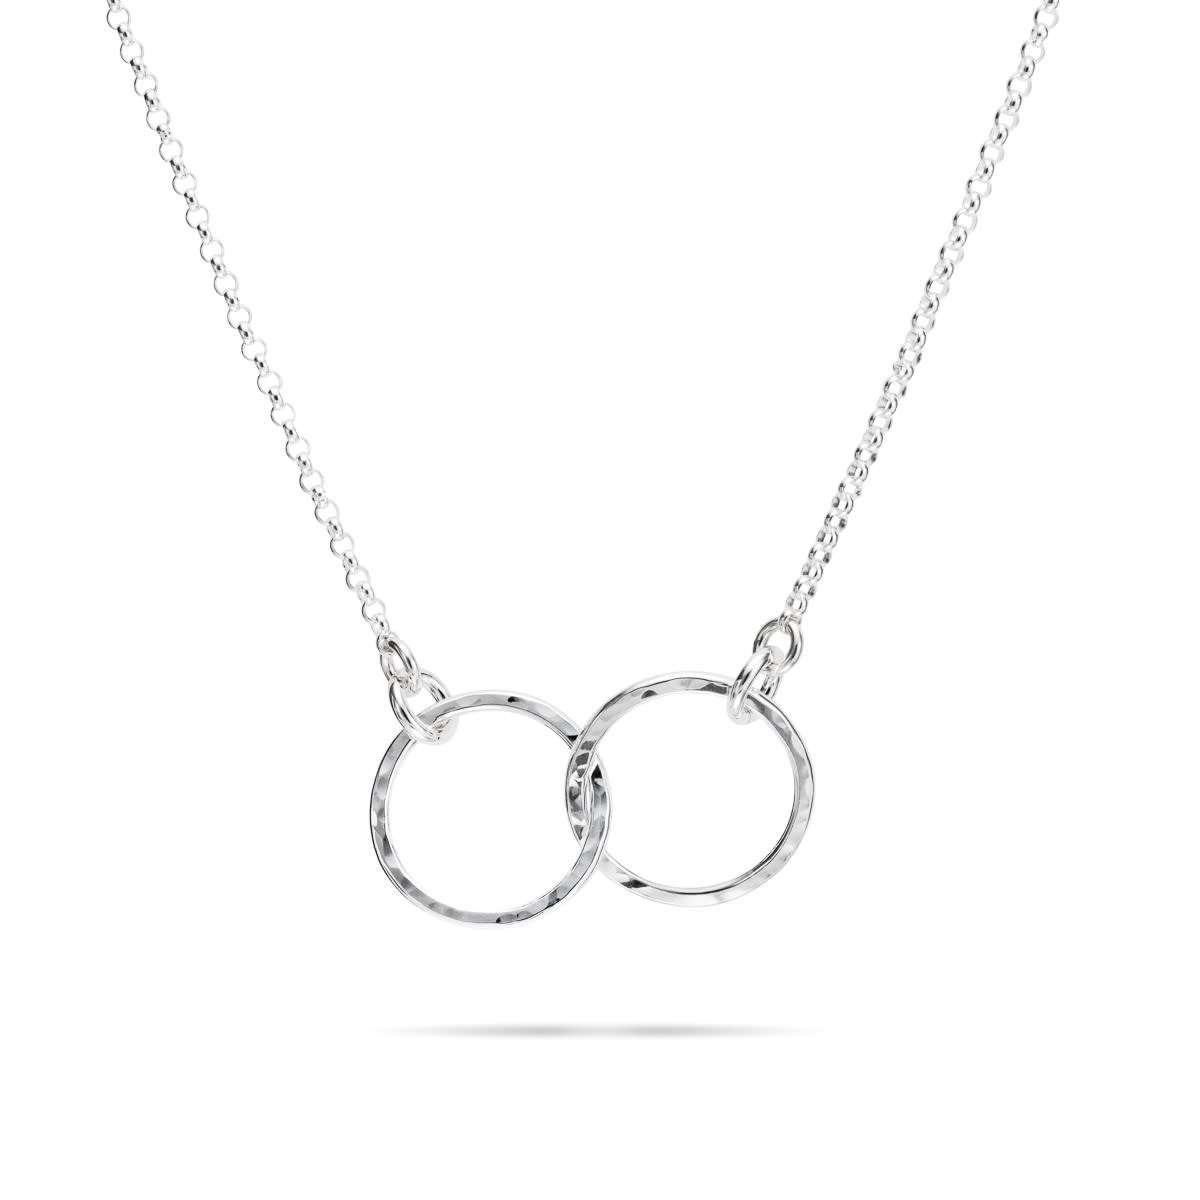 Mikel Grant Jewelry Necklace - Embrace Pendant -